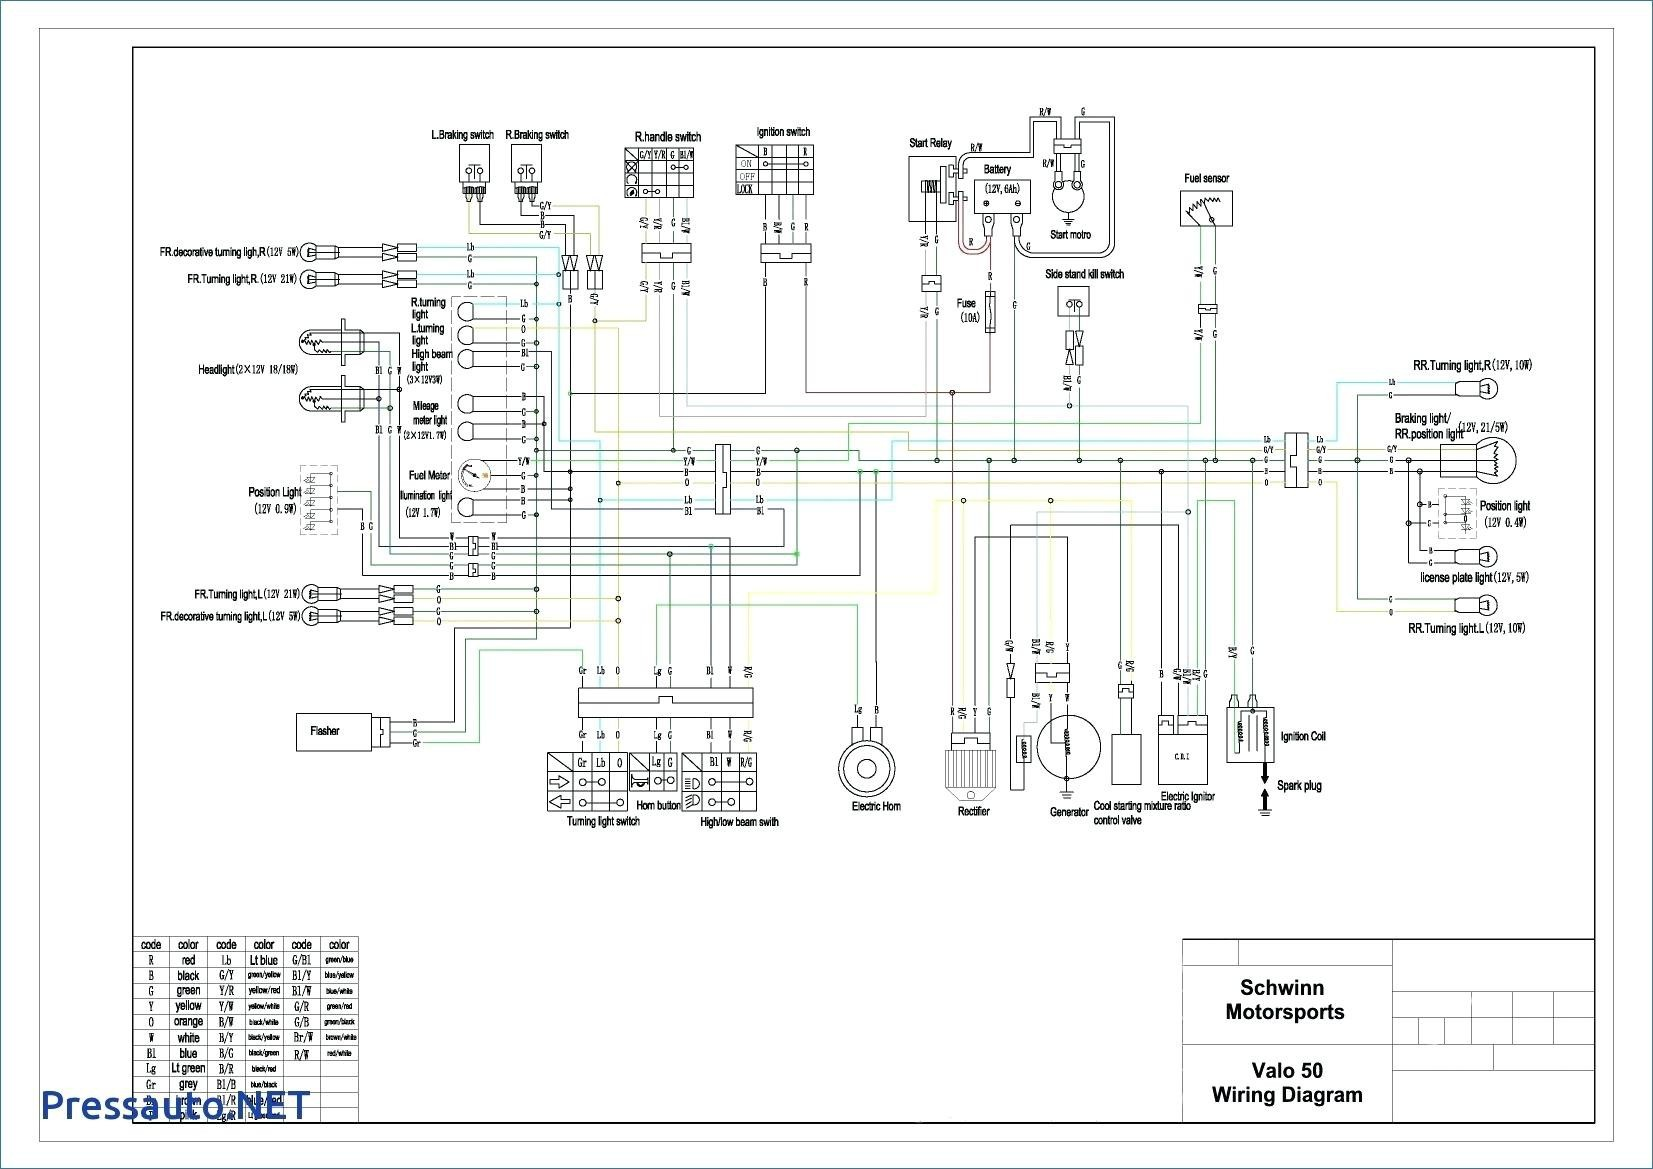 hight resolution of dish work wiring diagrams wiring diagram centre dish work 722k wiring diagram free picture